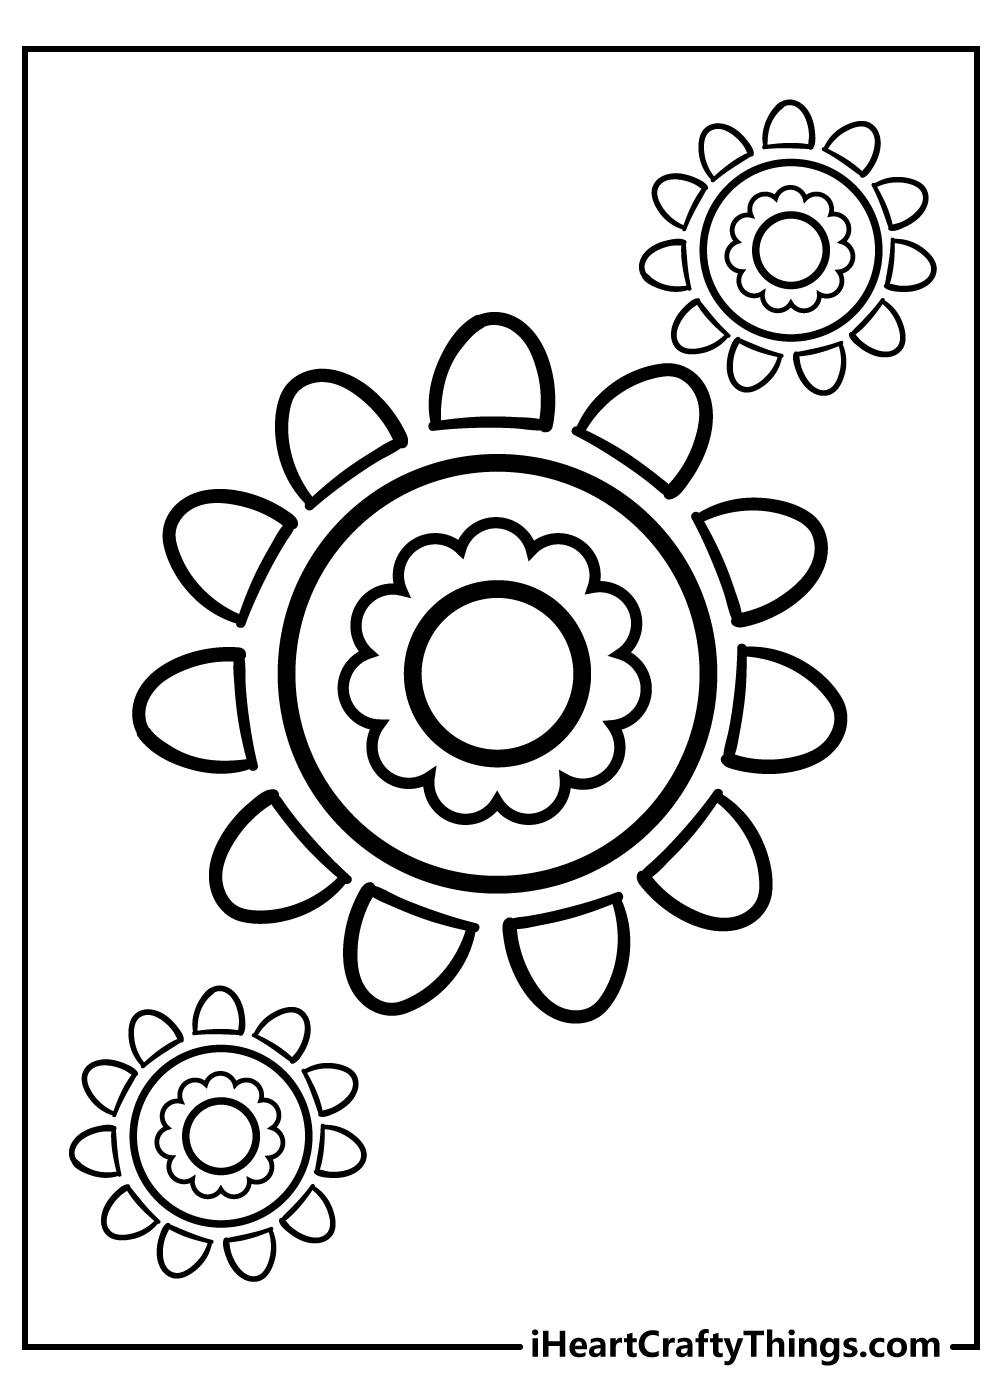 new simple flower coloring images for kids